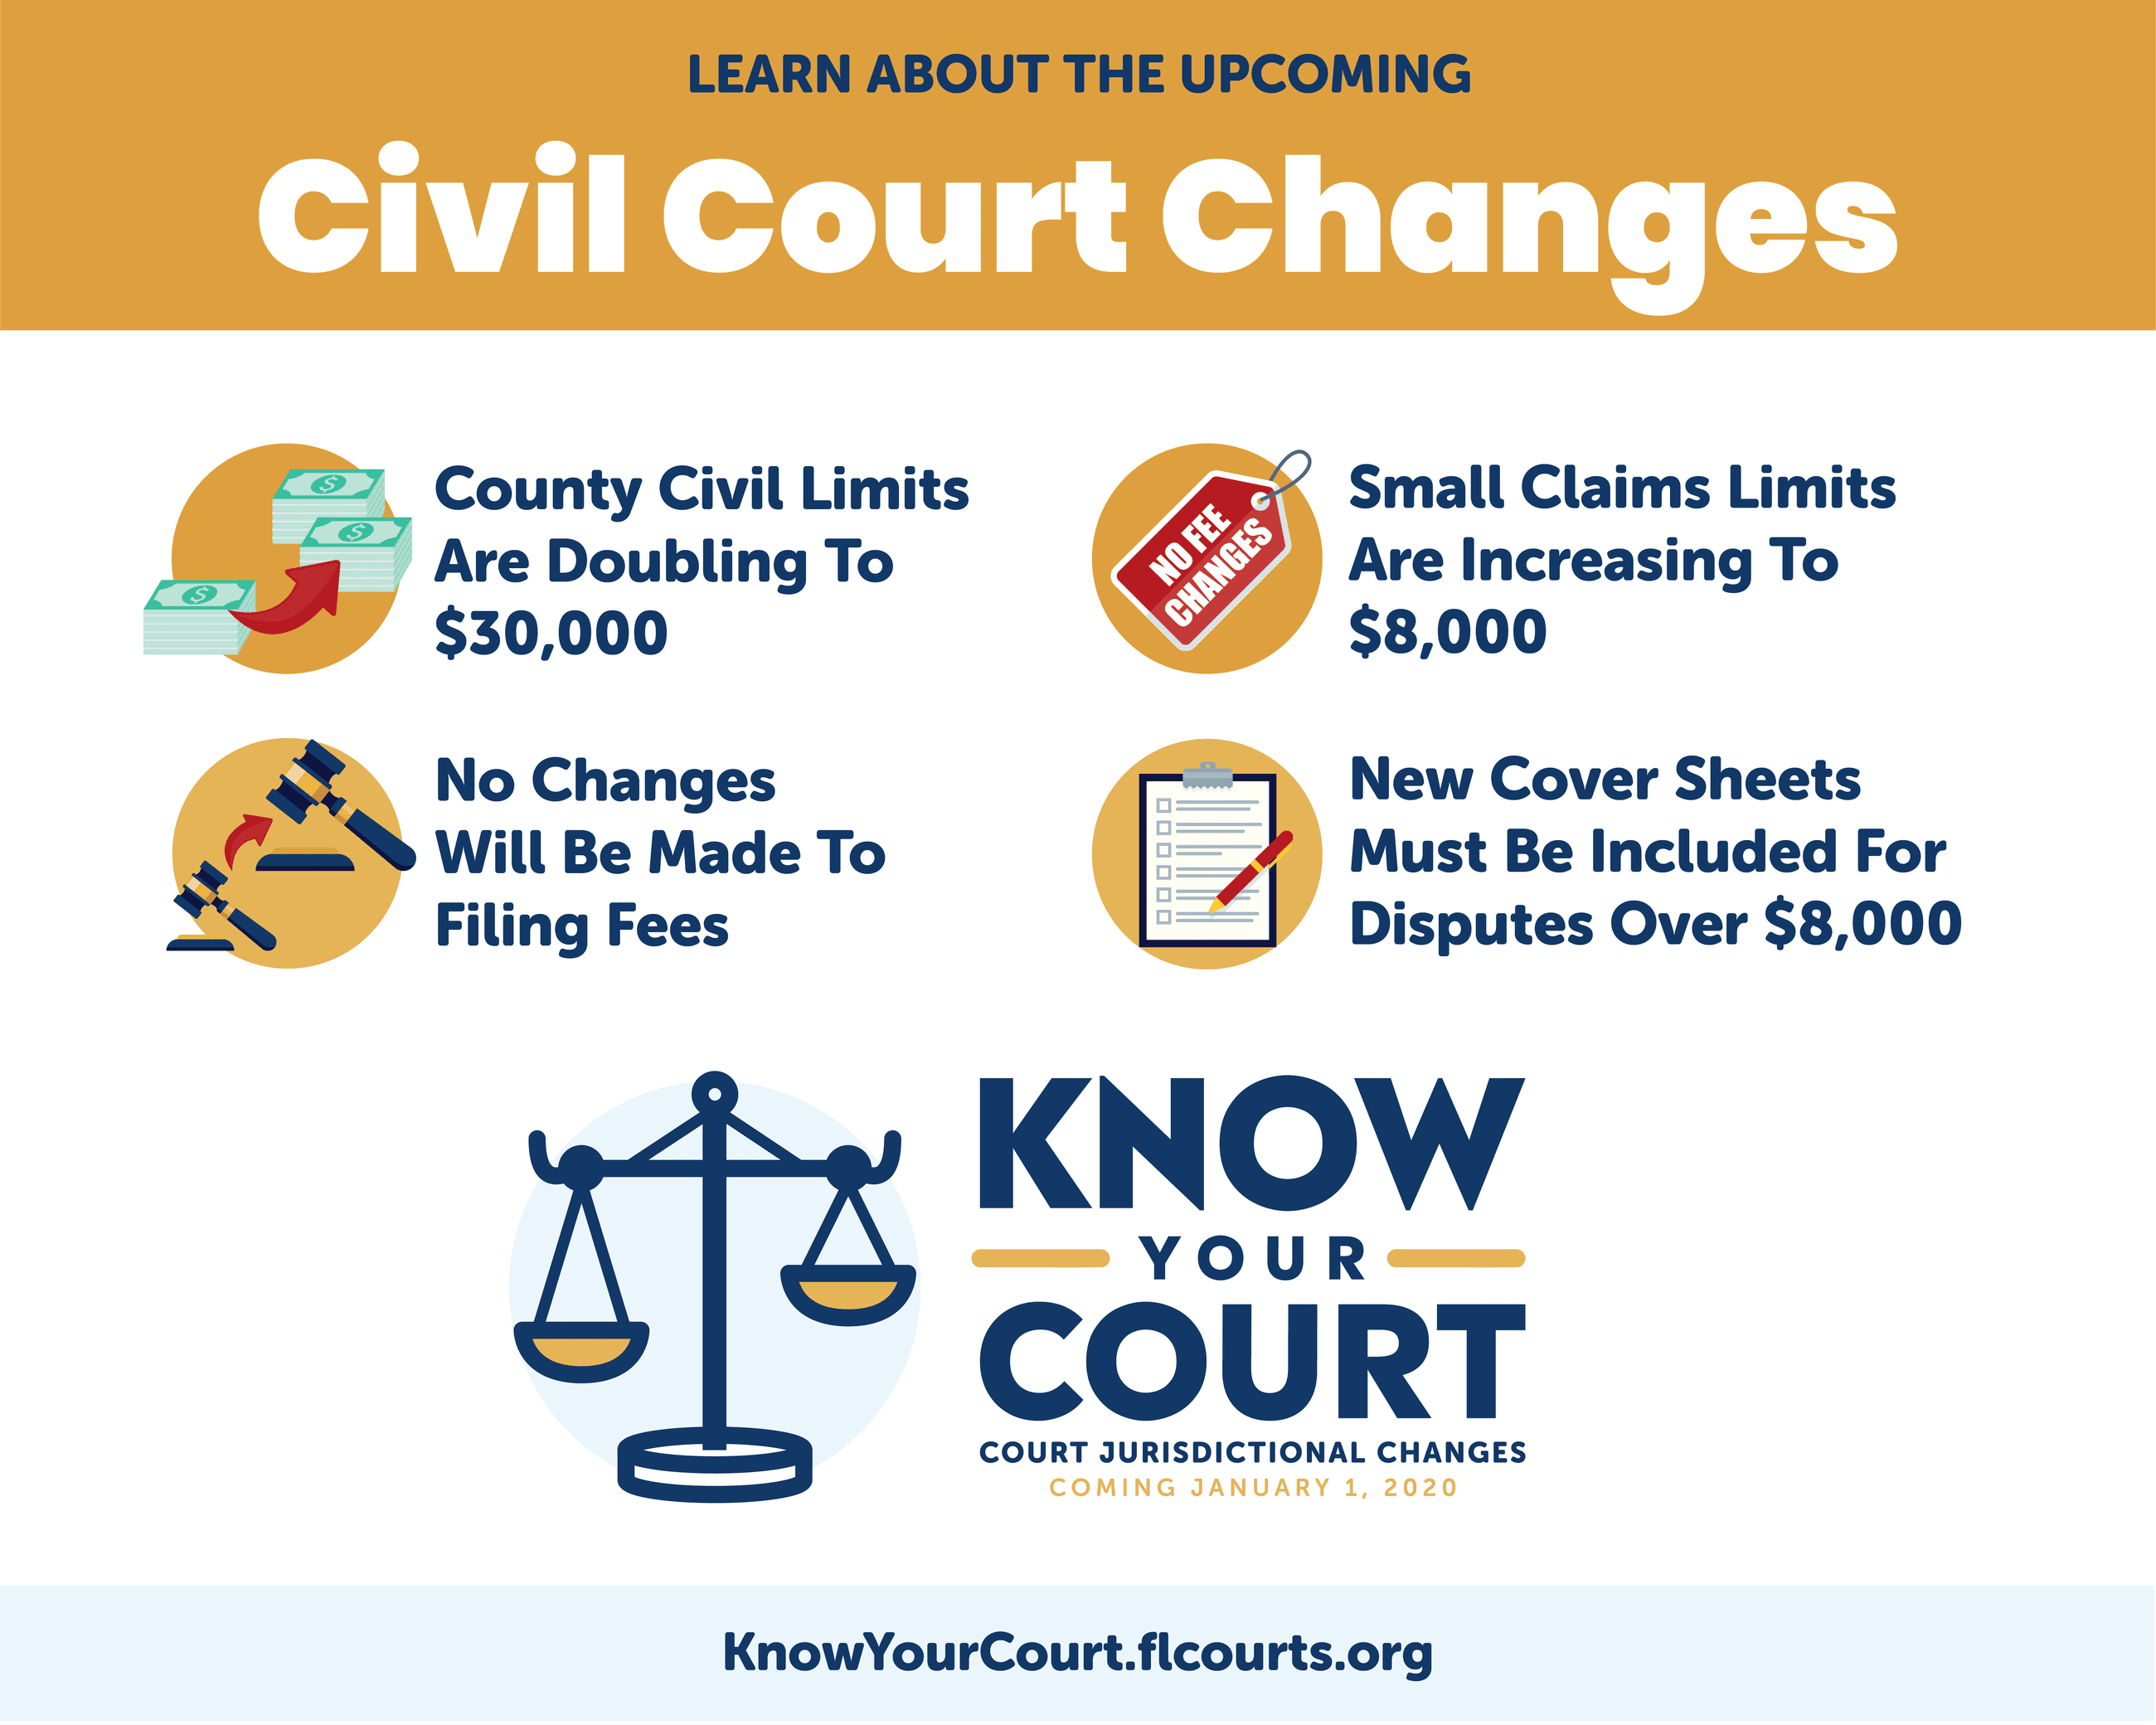 KnowYourCourt flyer describing changes to court jurisdictions and procedures.